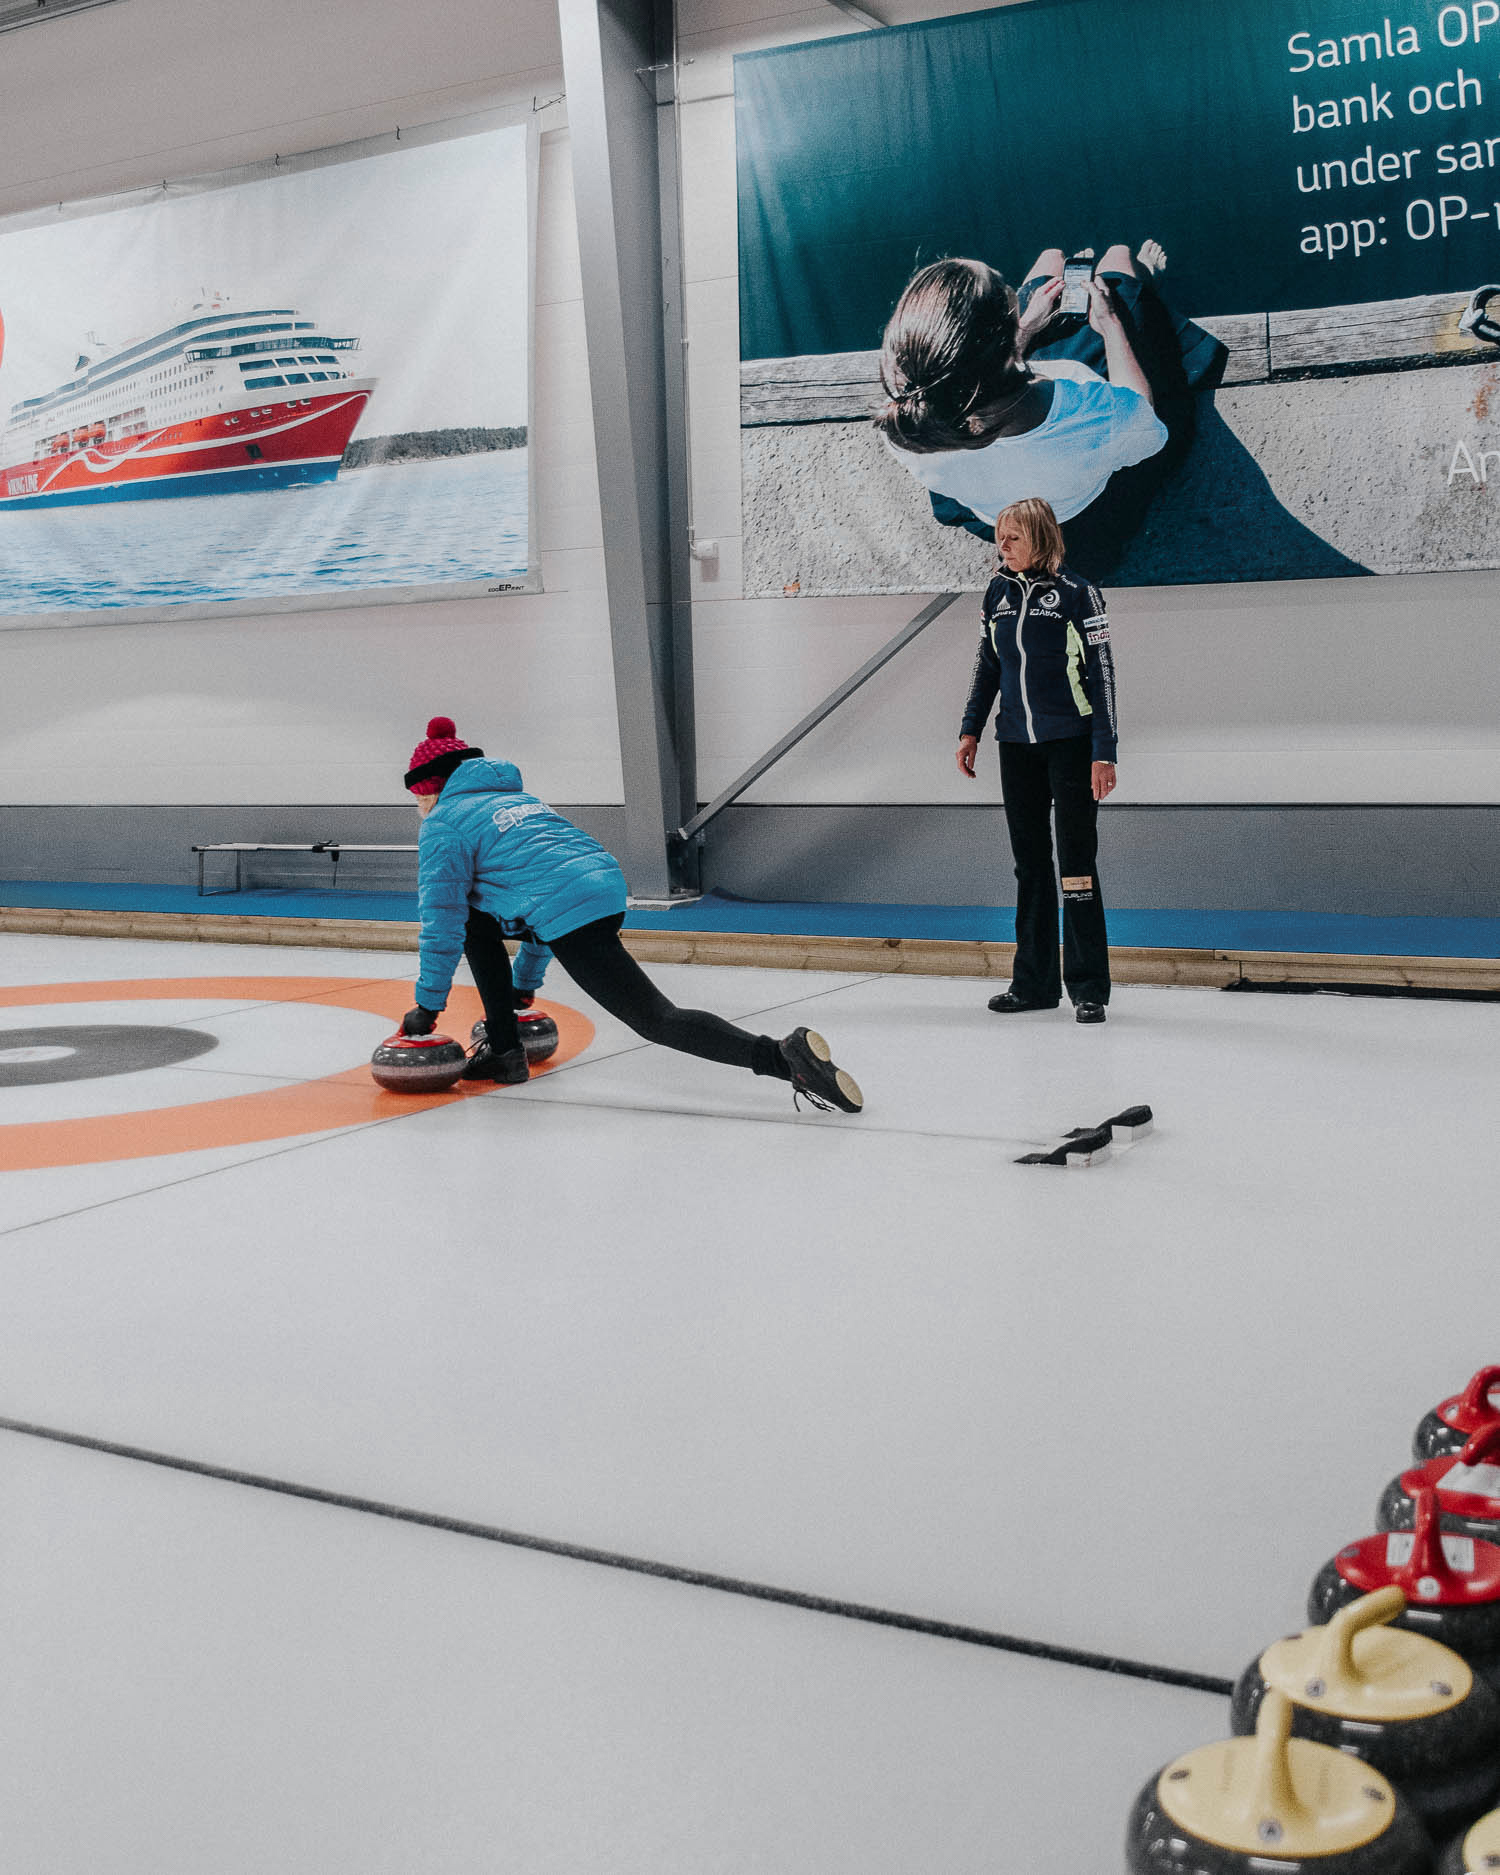 Curling Åland |Things to do in the Åland Islands